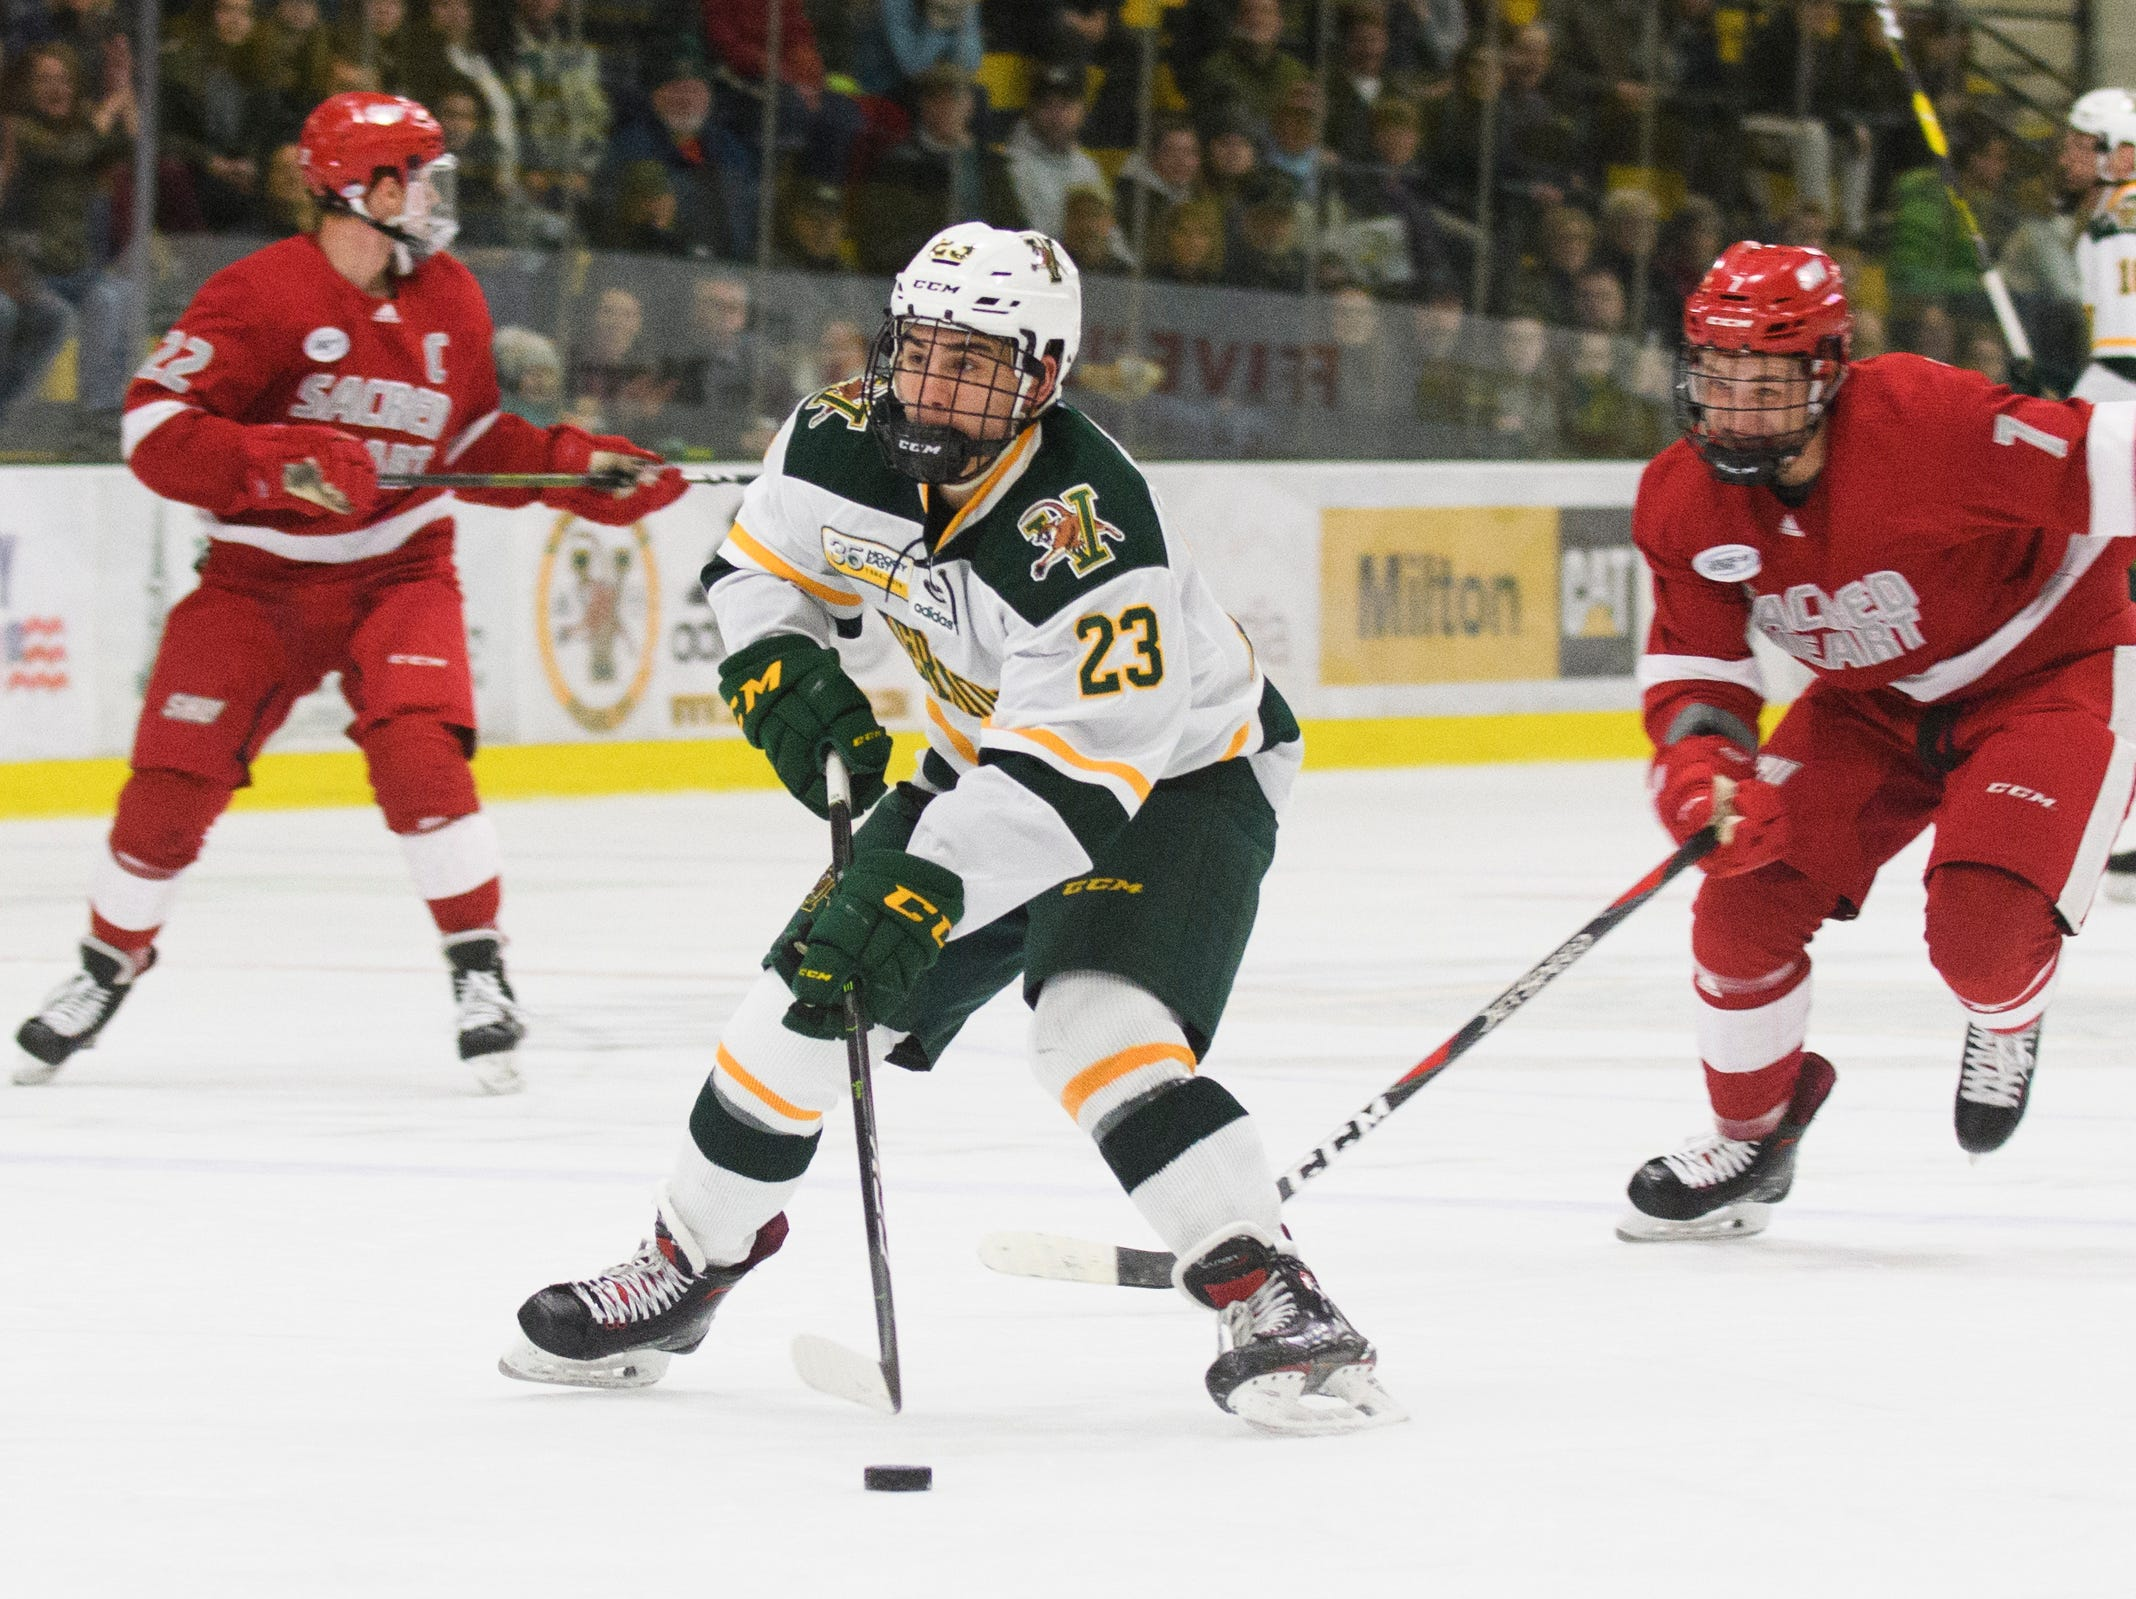 Vermont forward Max Kaufman (23) looks to shoot the puck on a break away during the men's hockey game between the Sacred Heart Pioneers and the Vermont Catamounts at Gutterson Field House on Friday night January 4, 2019 in Burlington.